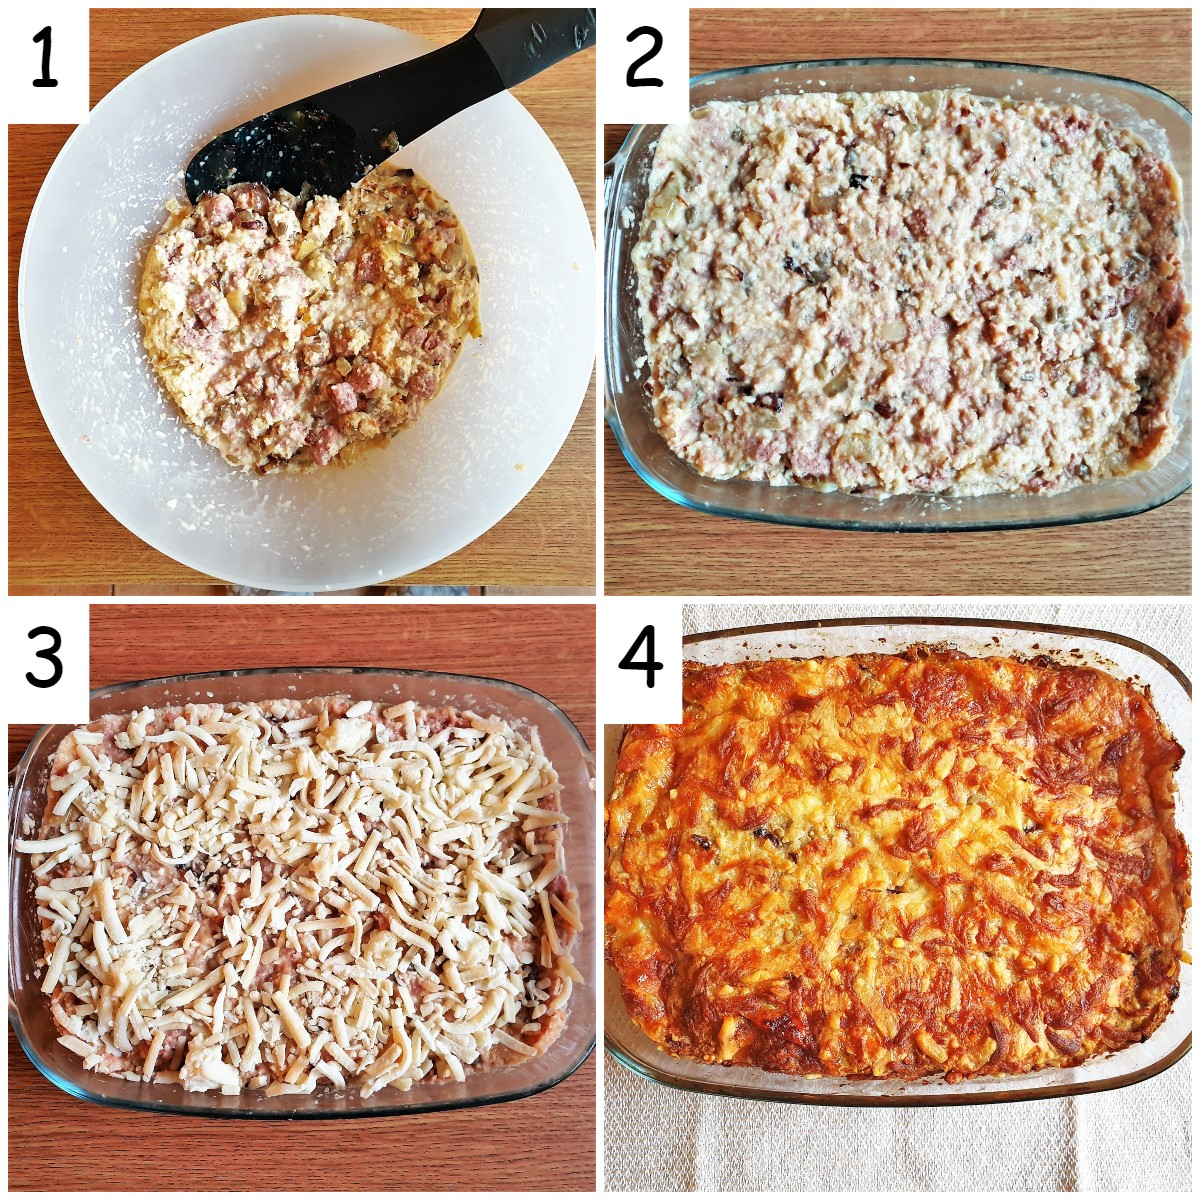 4 images showing steps for mixing a bully beef quiche.